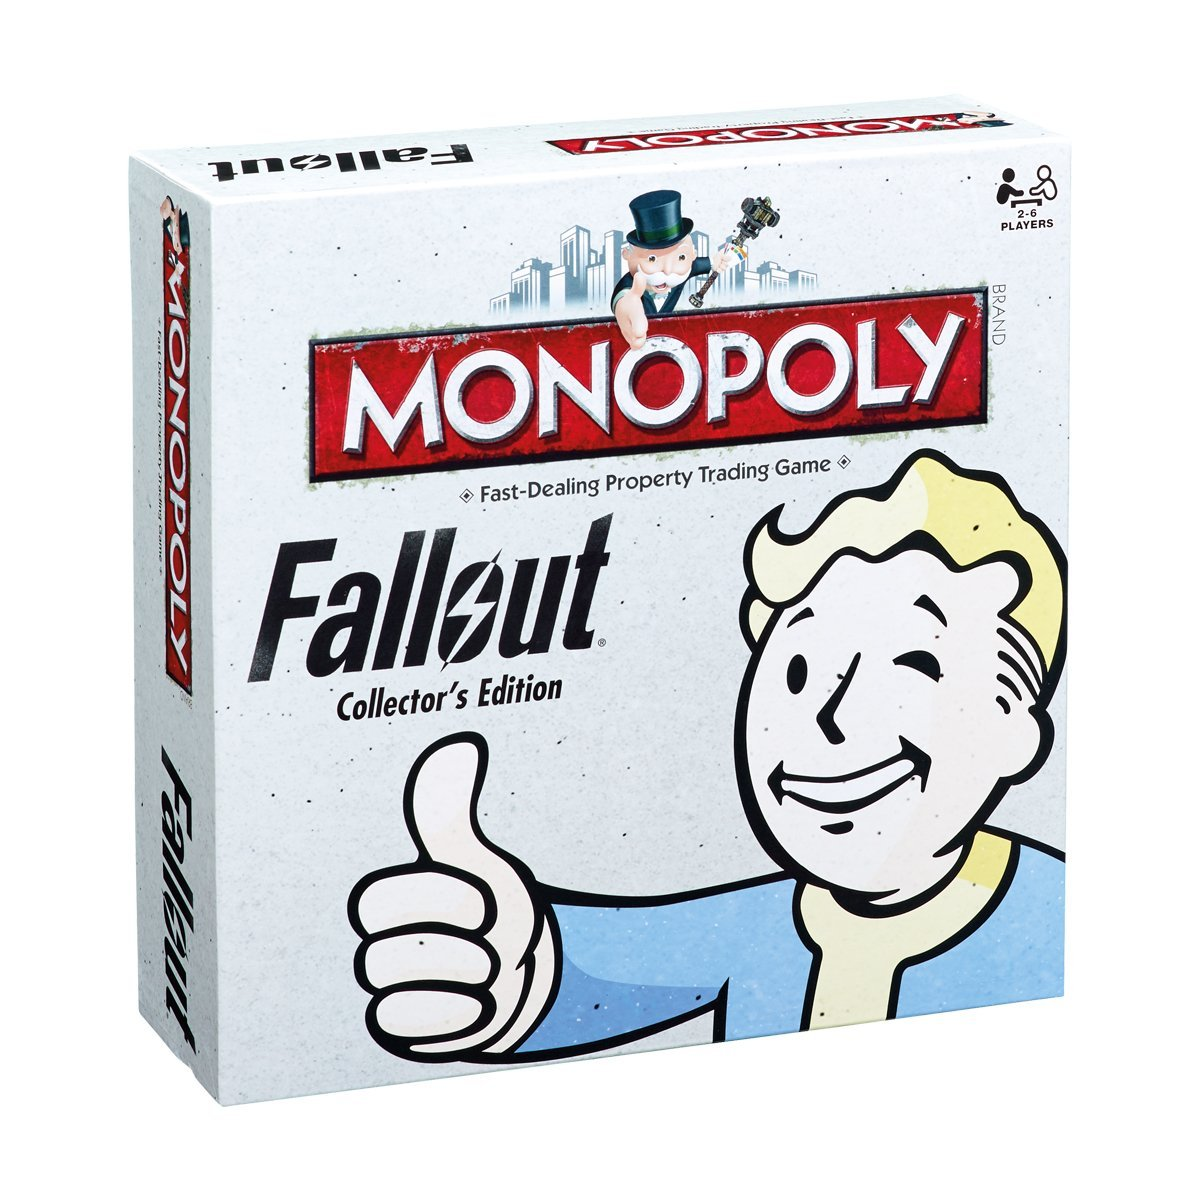 Fallout Monopoly - merchandise by Hasbro The Chelsea Gamer